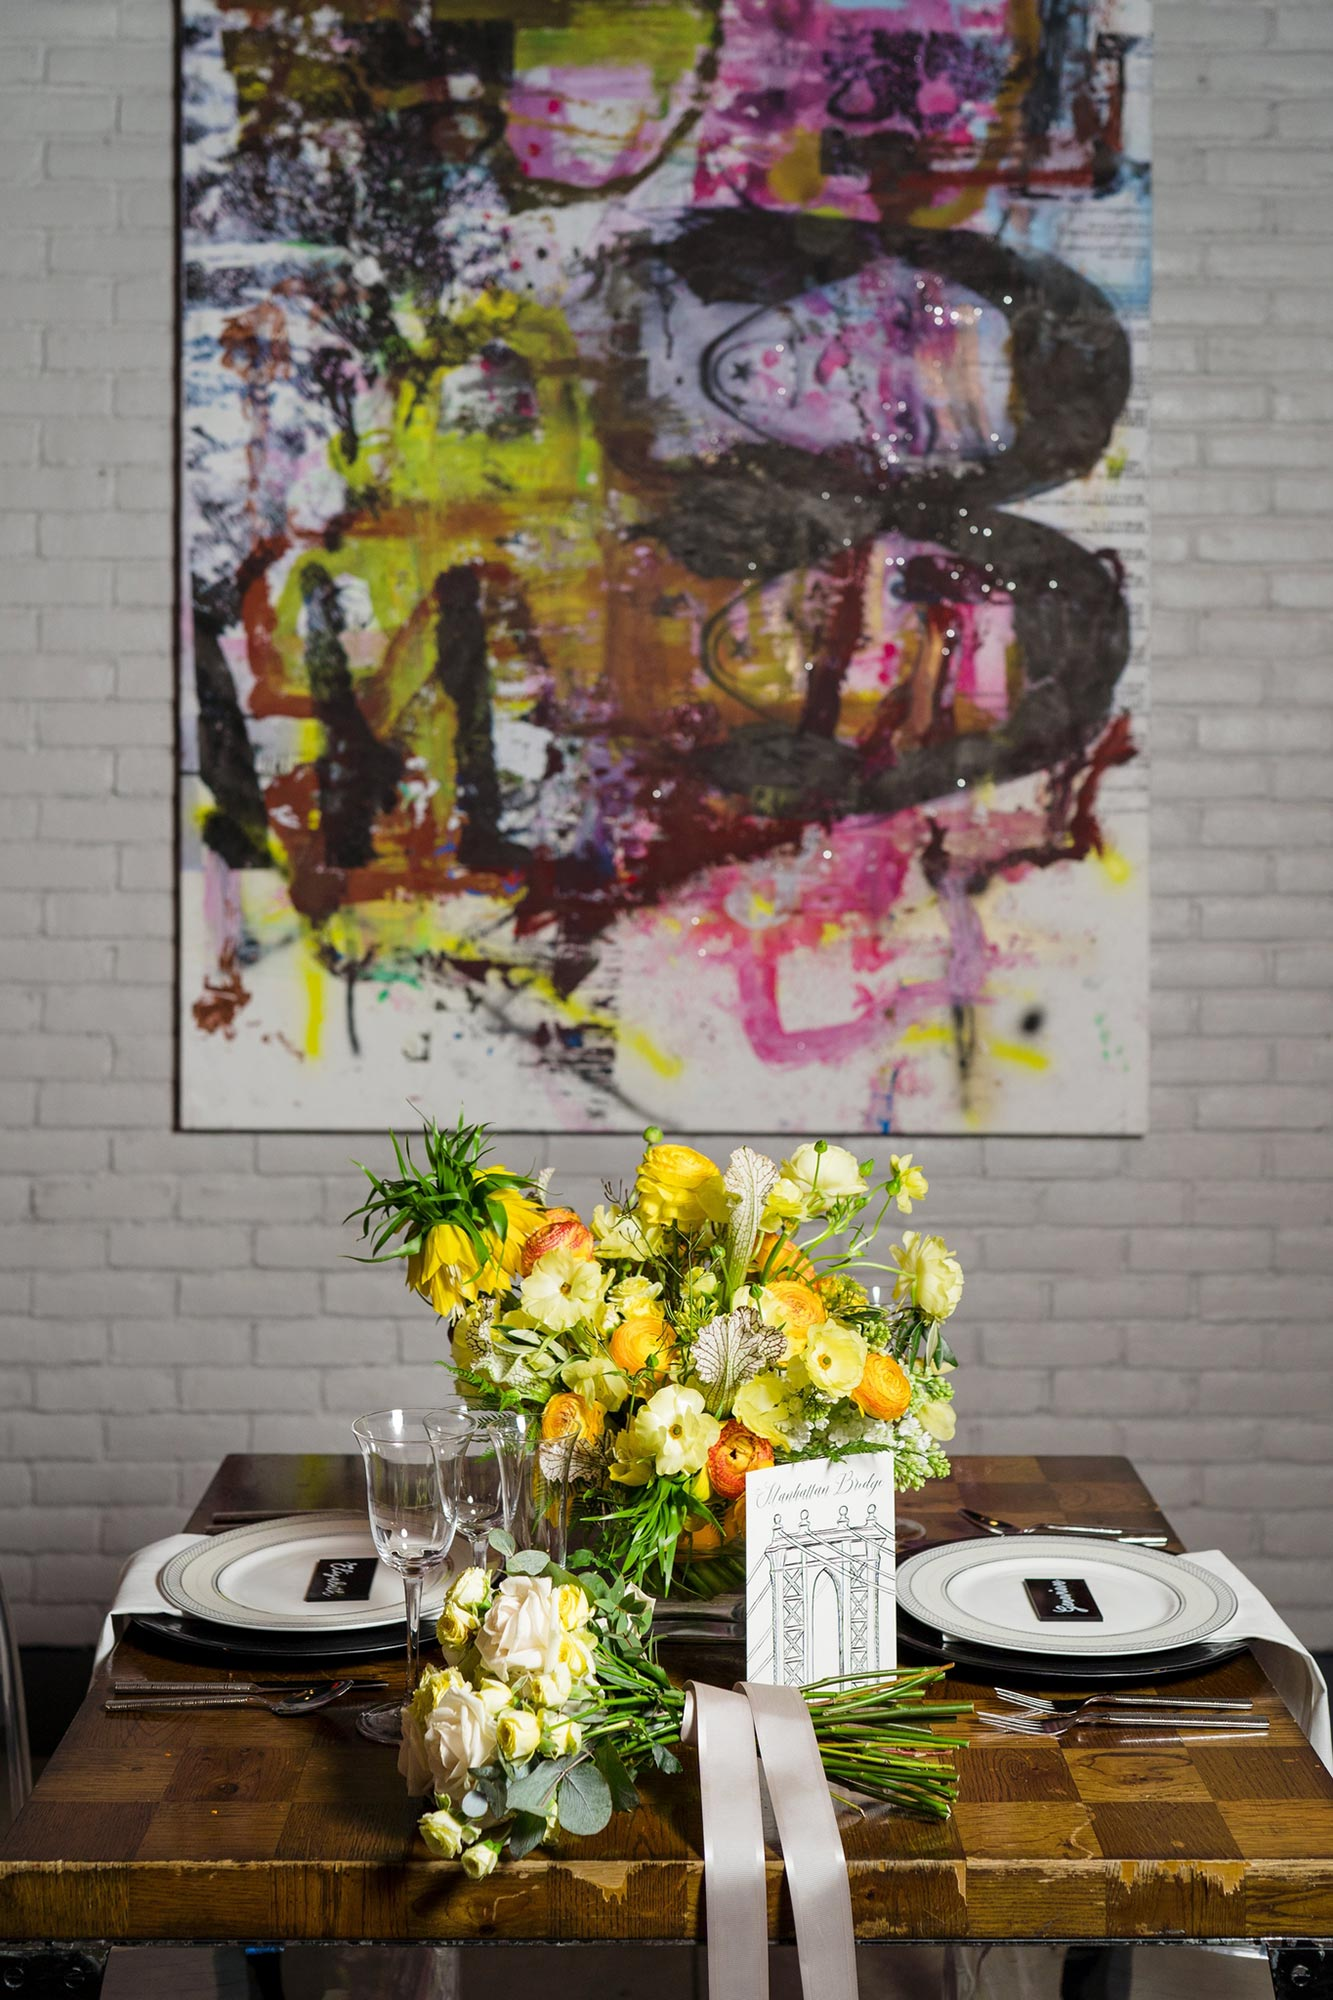 Bright Neon Wedding Inspiration at The Bowery Hotel NYC showing reception table with neon yellow centerpiece JC Lemon Photography